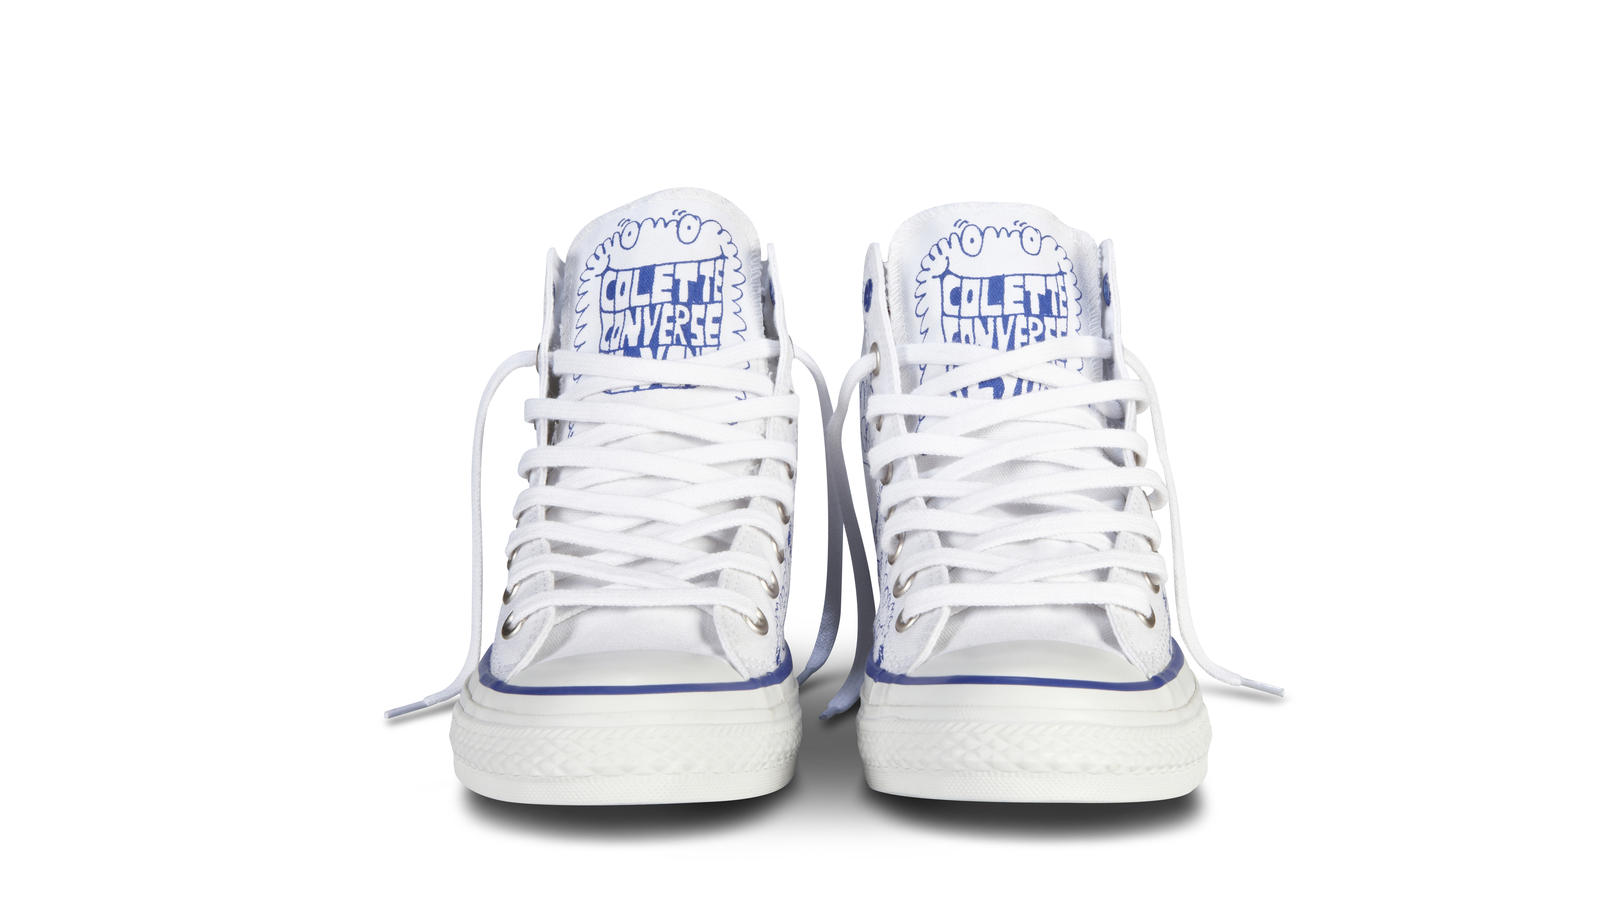 8f3466d6b145 Converse Launches Collaboration With Kevin Lyons For Colette - Nike News